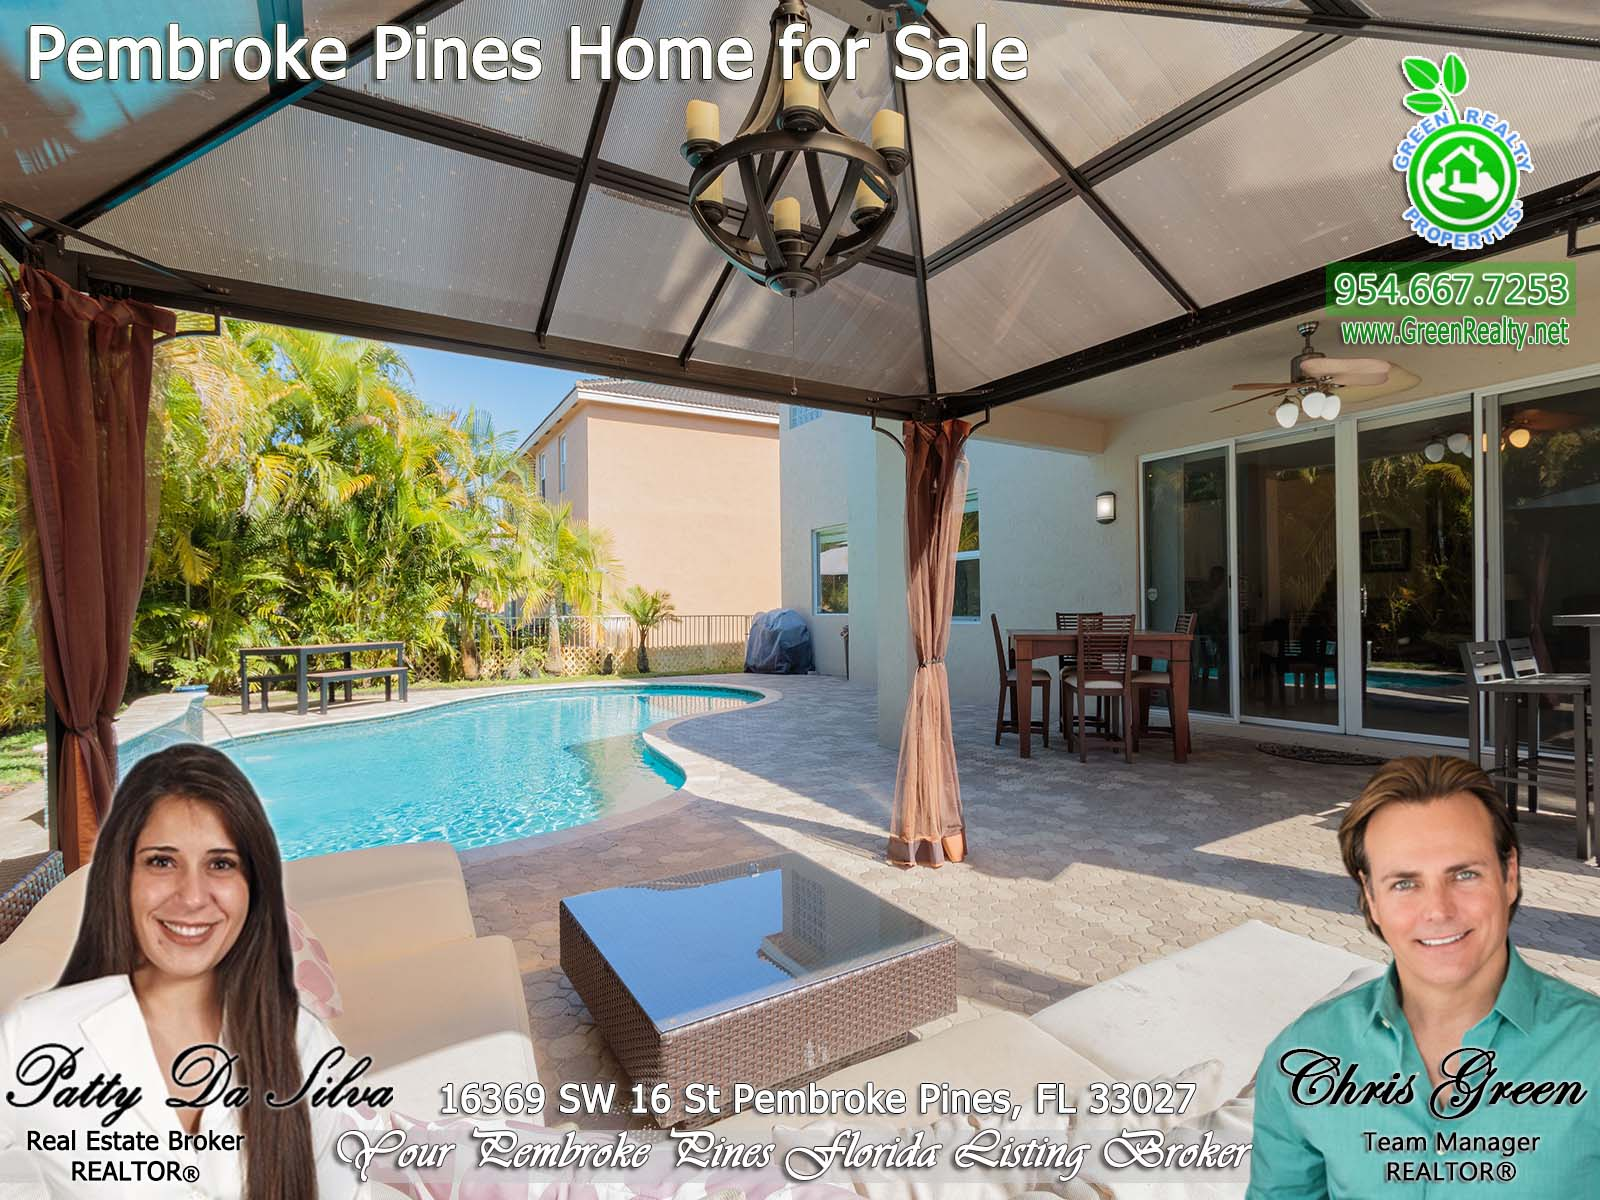 22 Pembroke Pines Realtor Broker Patty Da Silva south florida listing (22)